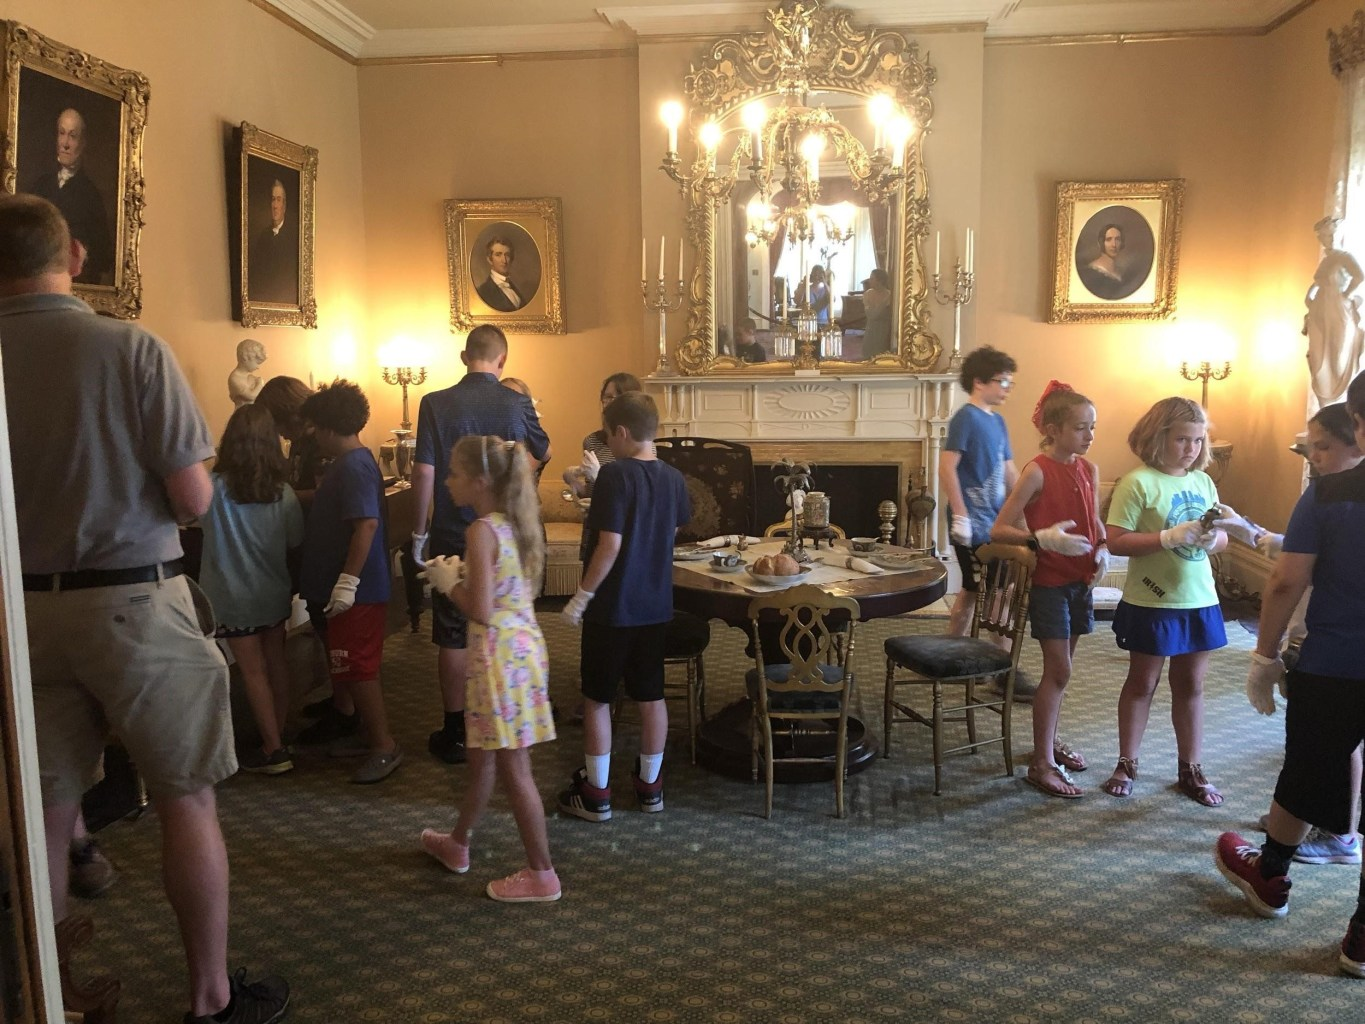 A group of campers wearing white gloves explore the interior of a historic house.